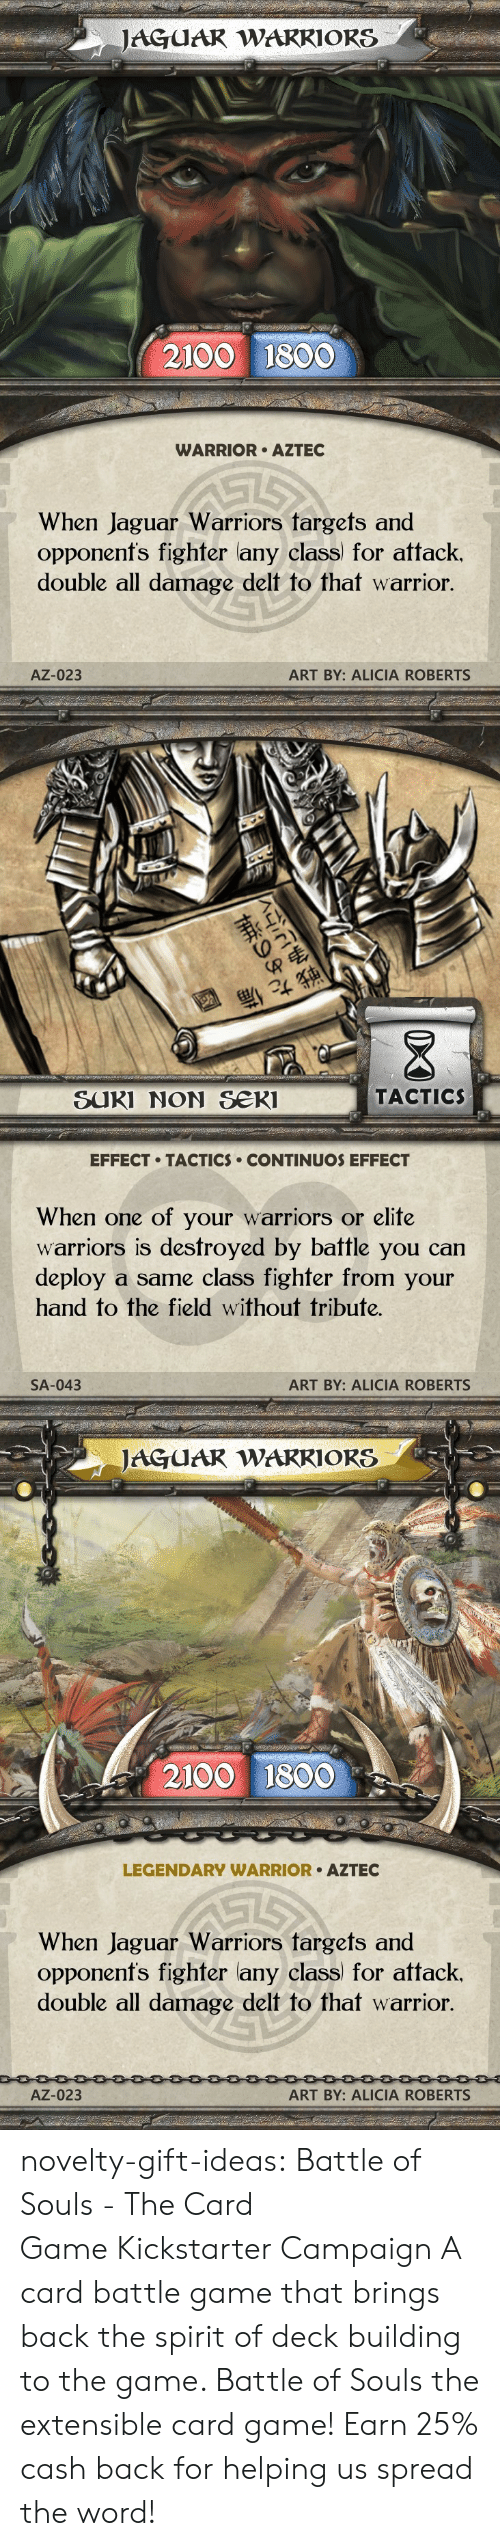 Kickstarter: JAGUAR WARRIORS  2100 1800  WARRIOR AZTEC  When Jaguar Warriors targets and  opponenfs fighter lany class for attack.  double all damage delt to that warrior.  AZ-023  ART BY: ALICIA ROBERTS   退  SUKI NON Se  TACTIC  EFFECT TACTICS CONTINUOS EFFECT  When one of your warriors or elite  warriors is destroyed by battle you can  deploy a same class fighfer from your  hand to the field without tribute.  SA-043  ART BY: ALICIA ROBERTS   JAGUAR WAKRIORS  2100 1800  LEGENDARY WARRIOR AZTEC  When Jaguar Warriors fargets and  opponenfs fighter lany class) for attack.  double all damage delt to that warrior  AZ-023  ART BY: ALICIA ROBERTS novelty-gift-ideas: Battle of Souls - The Card GameKickstarter Campaign A card battle game that brings back the spirit of deck building to the game. Battle of Souls the extensible card game!   Earn 25% cash back for helping us spread the word!